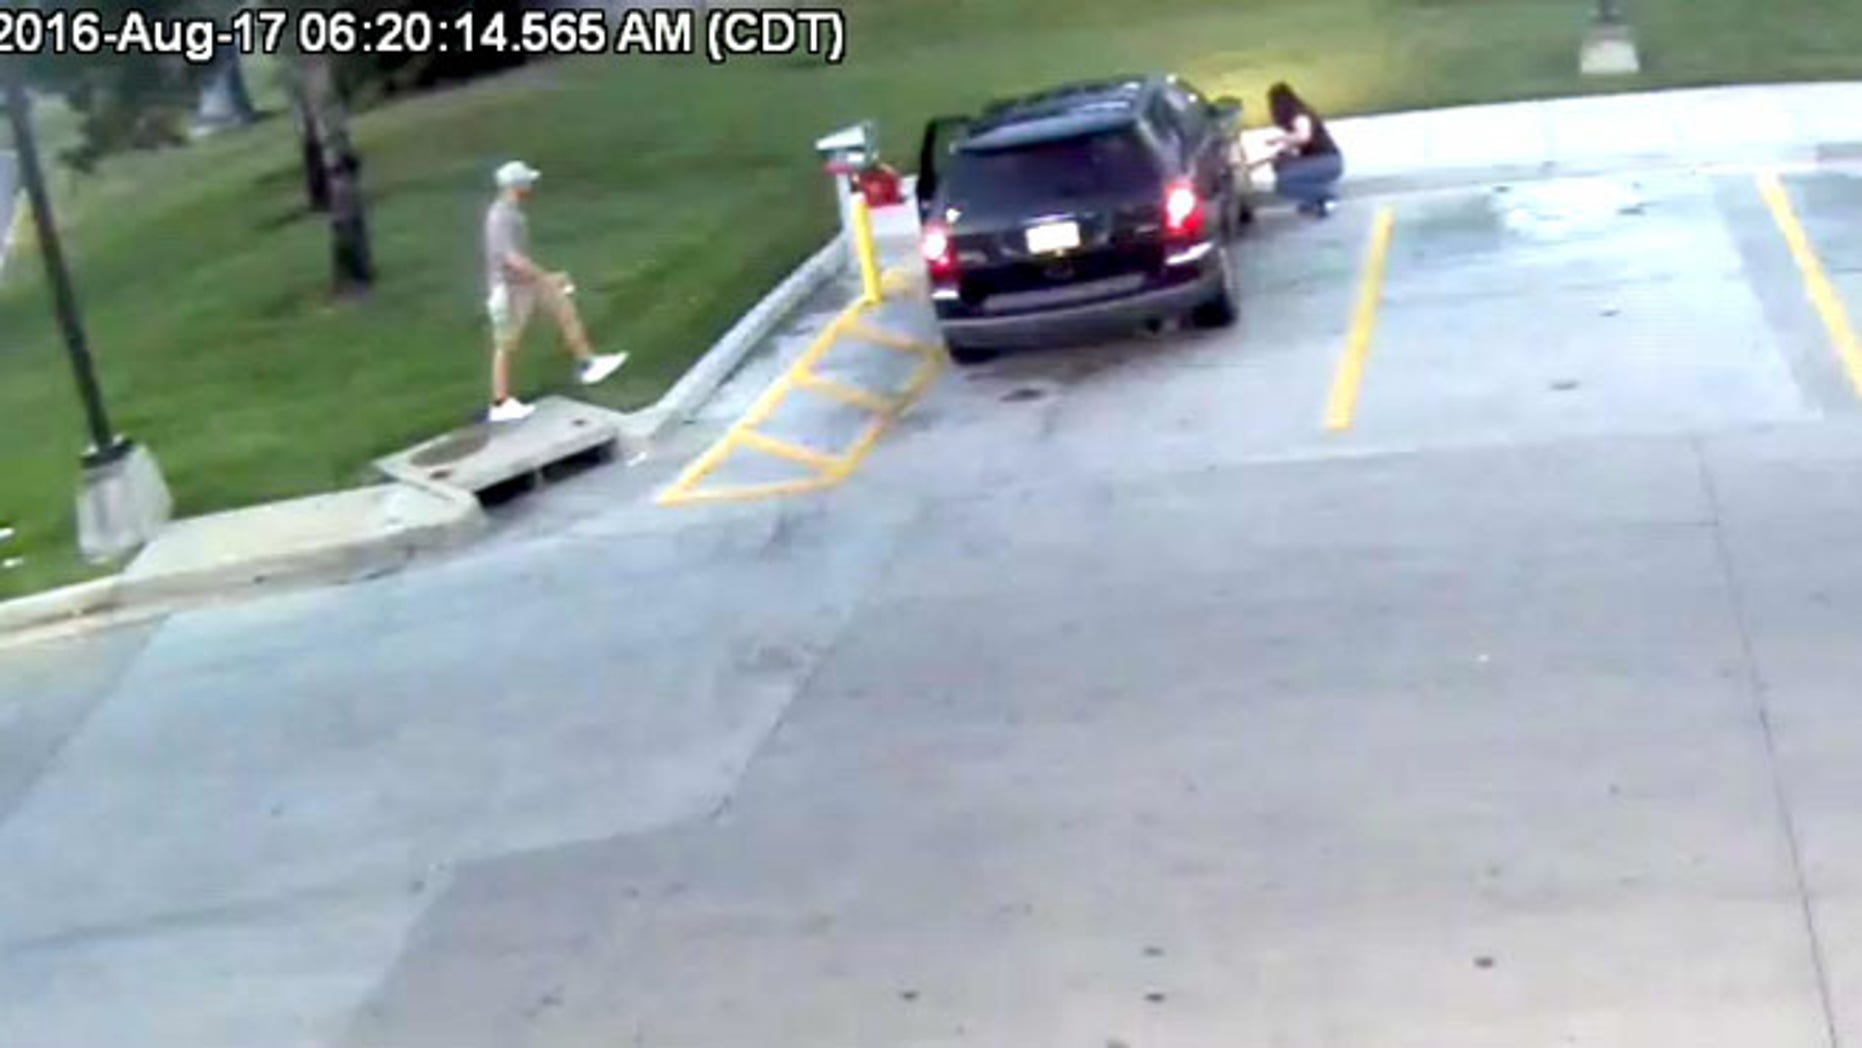 Still from a video showing a carjacking at an Independence, Missouri, gas station Wednesday. (Independence Police Department)